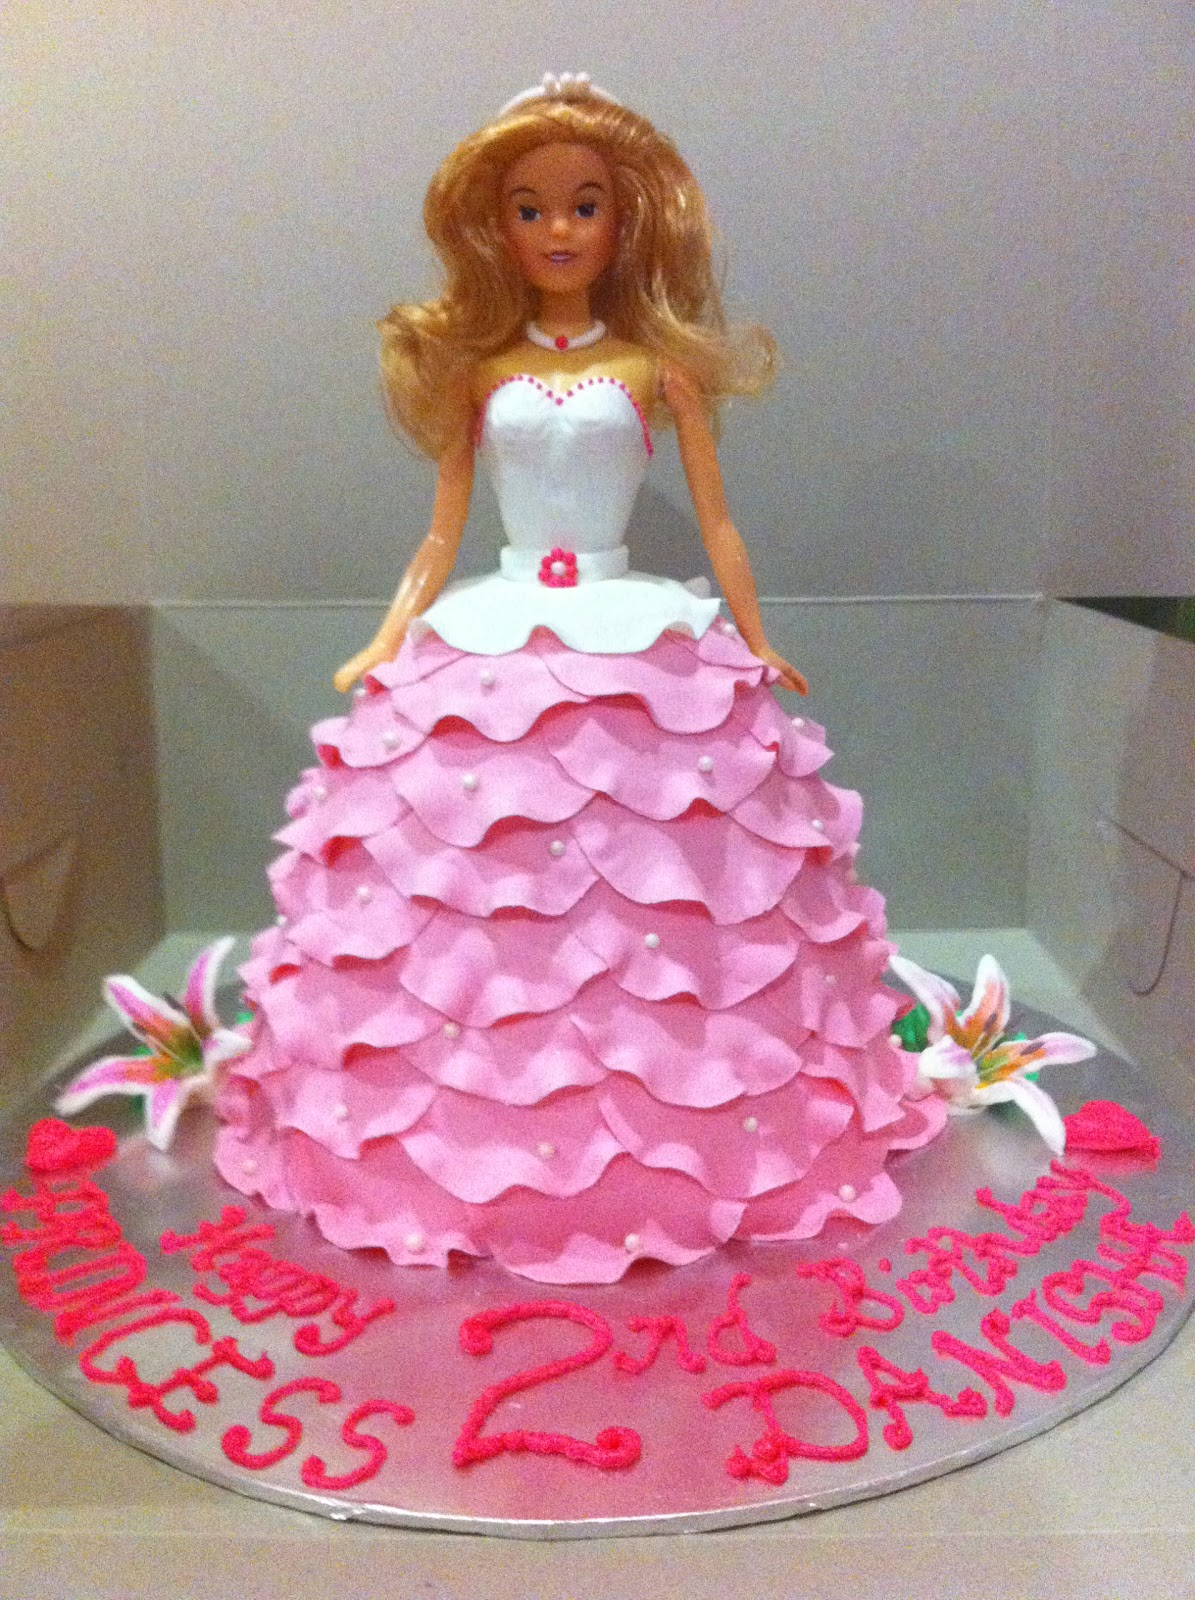 Home May De Cakes Princess Doll Cake And Rock N Fire Electric